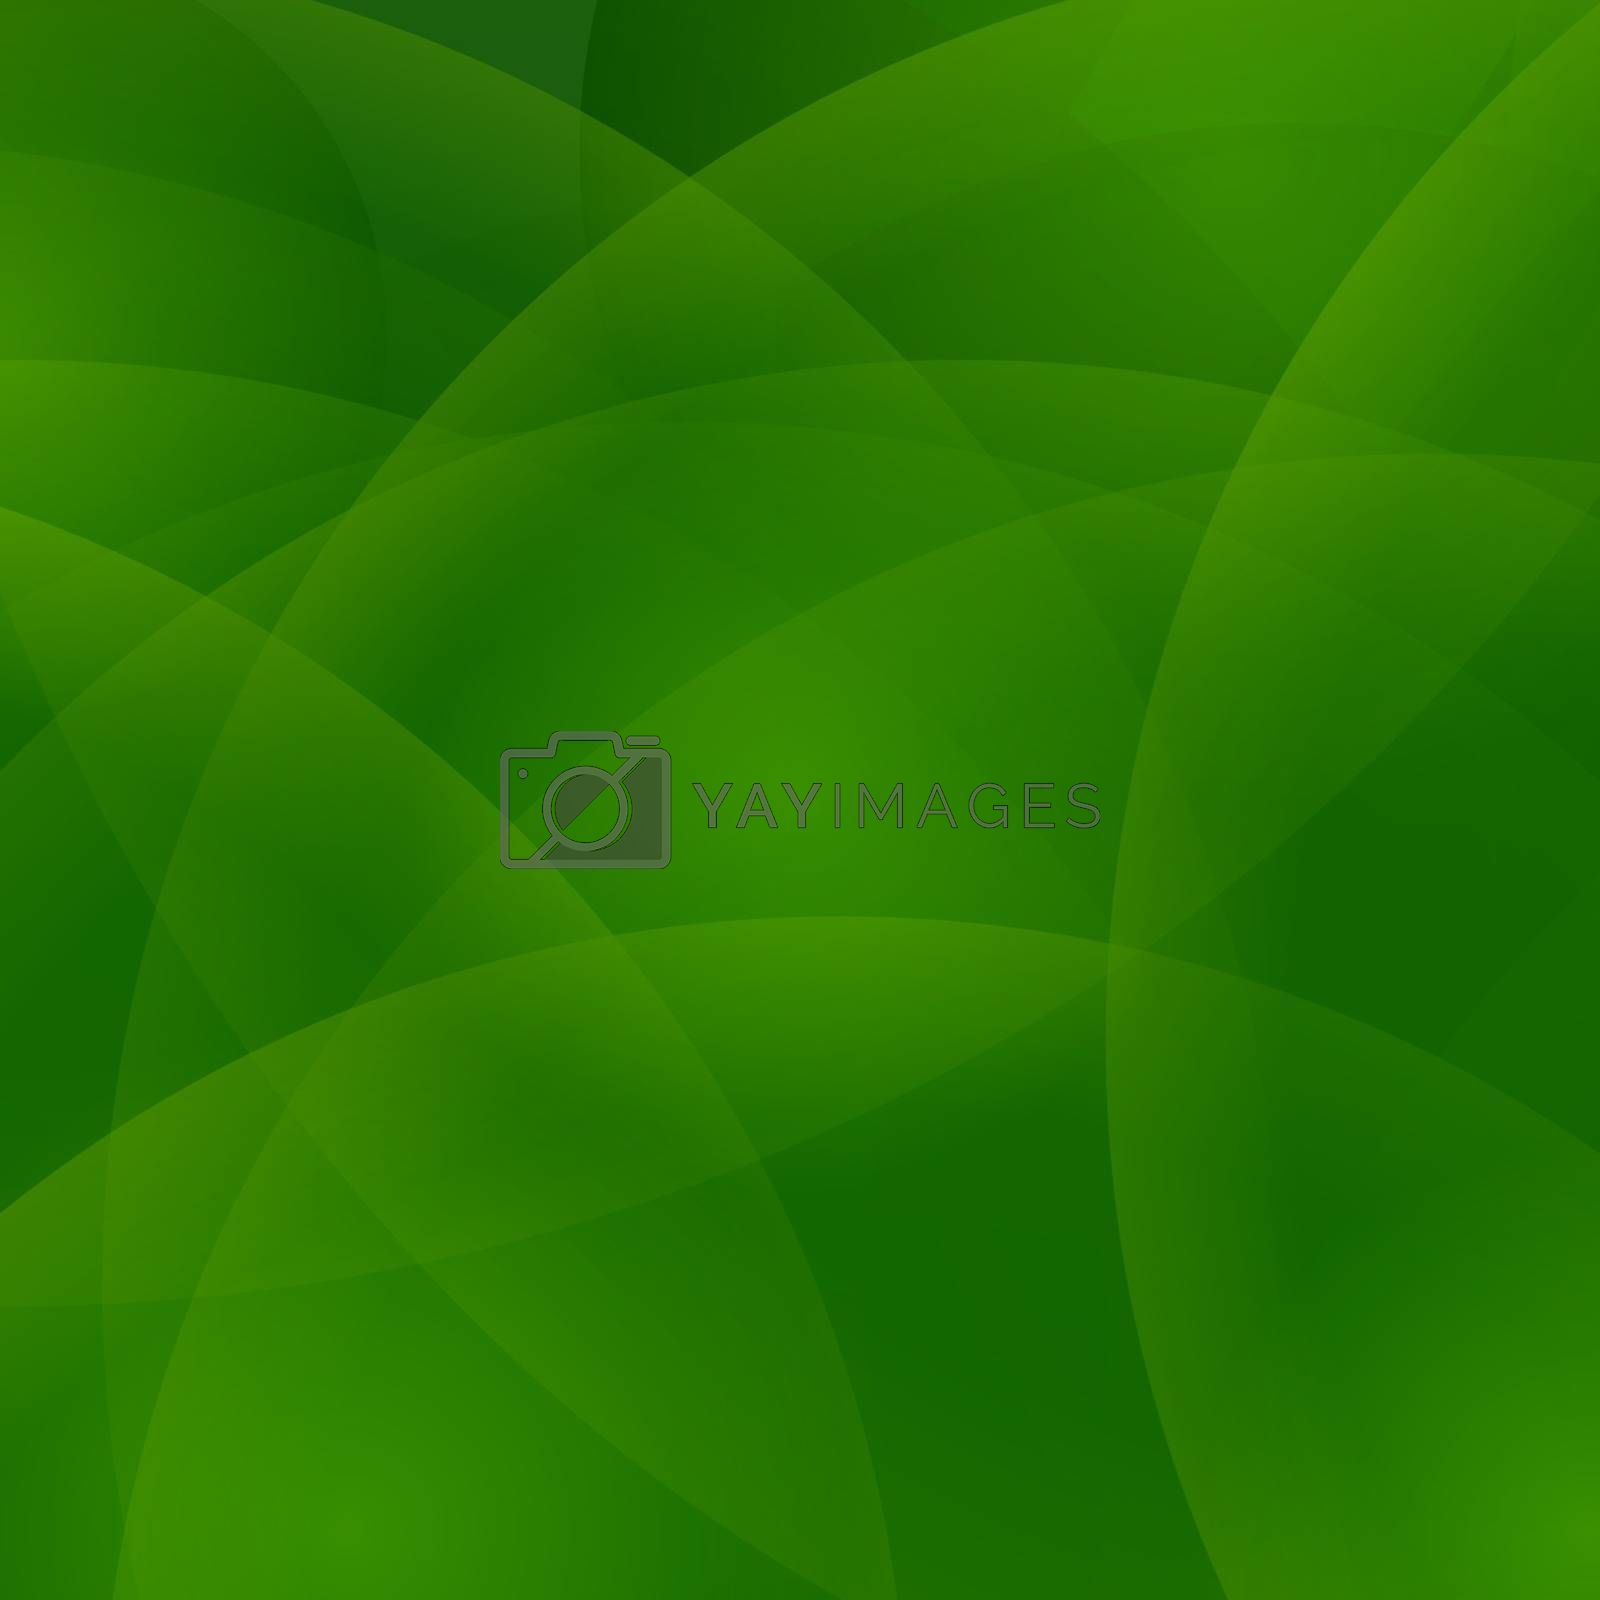 Royalty free image of Green Background by valeo5